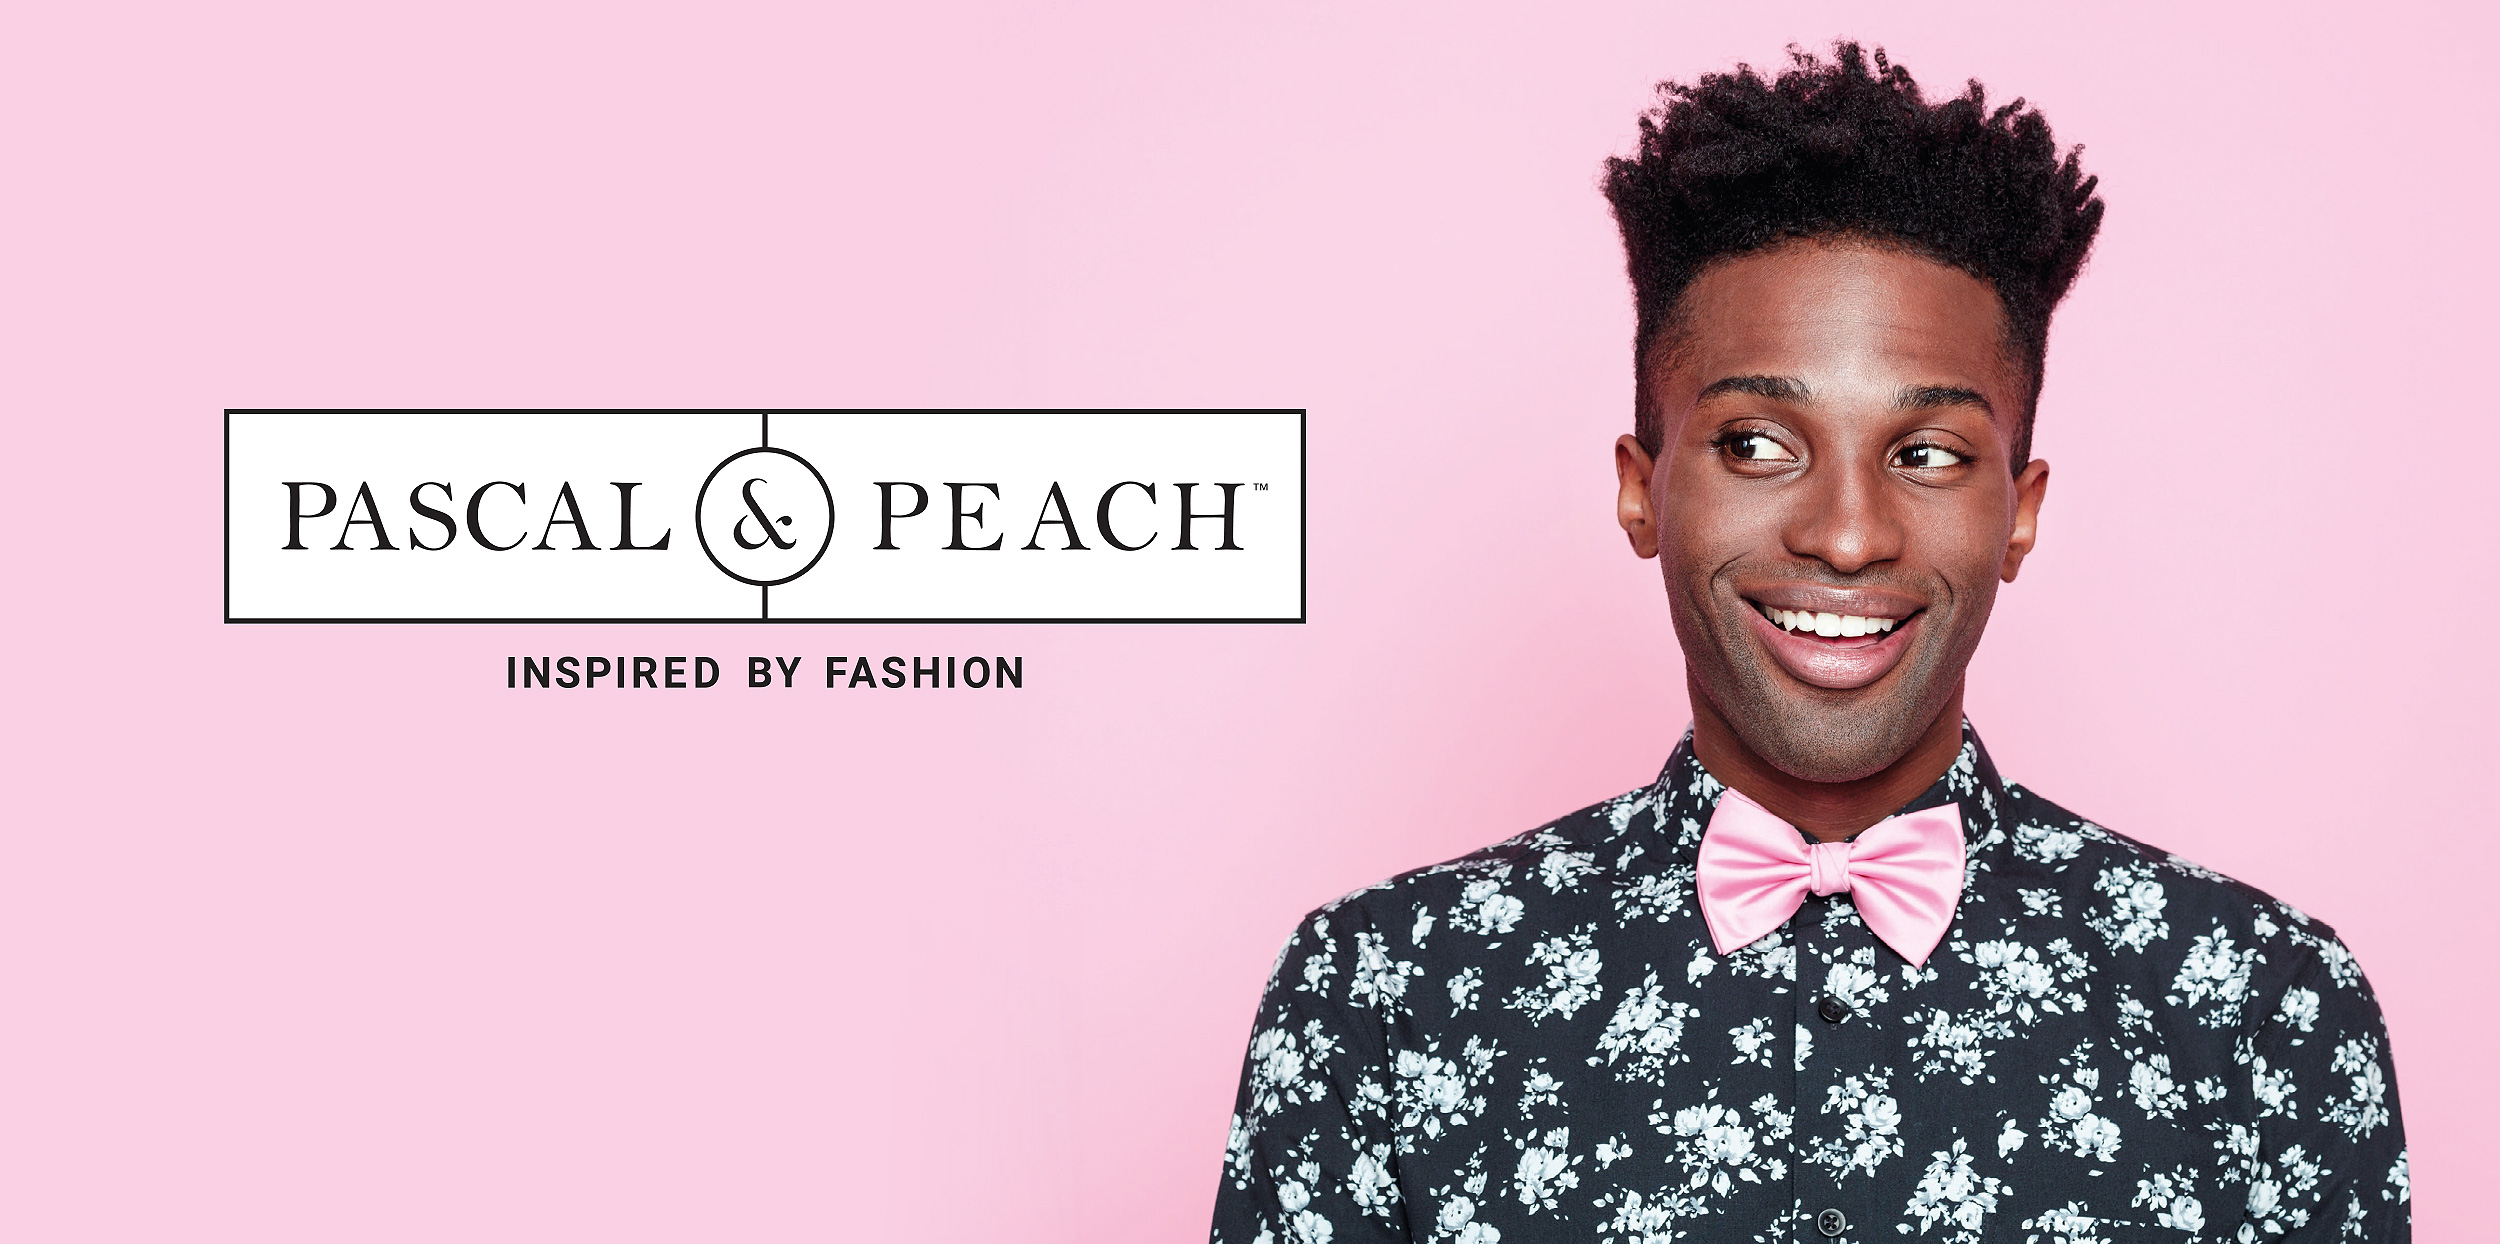 Pascal-and-Peach-Fashion-Branding-Parramatta-Design-Handle-Sydney_1.jpg